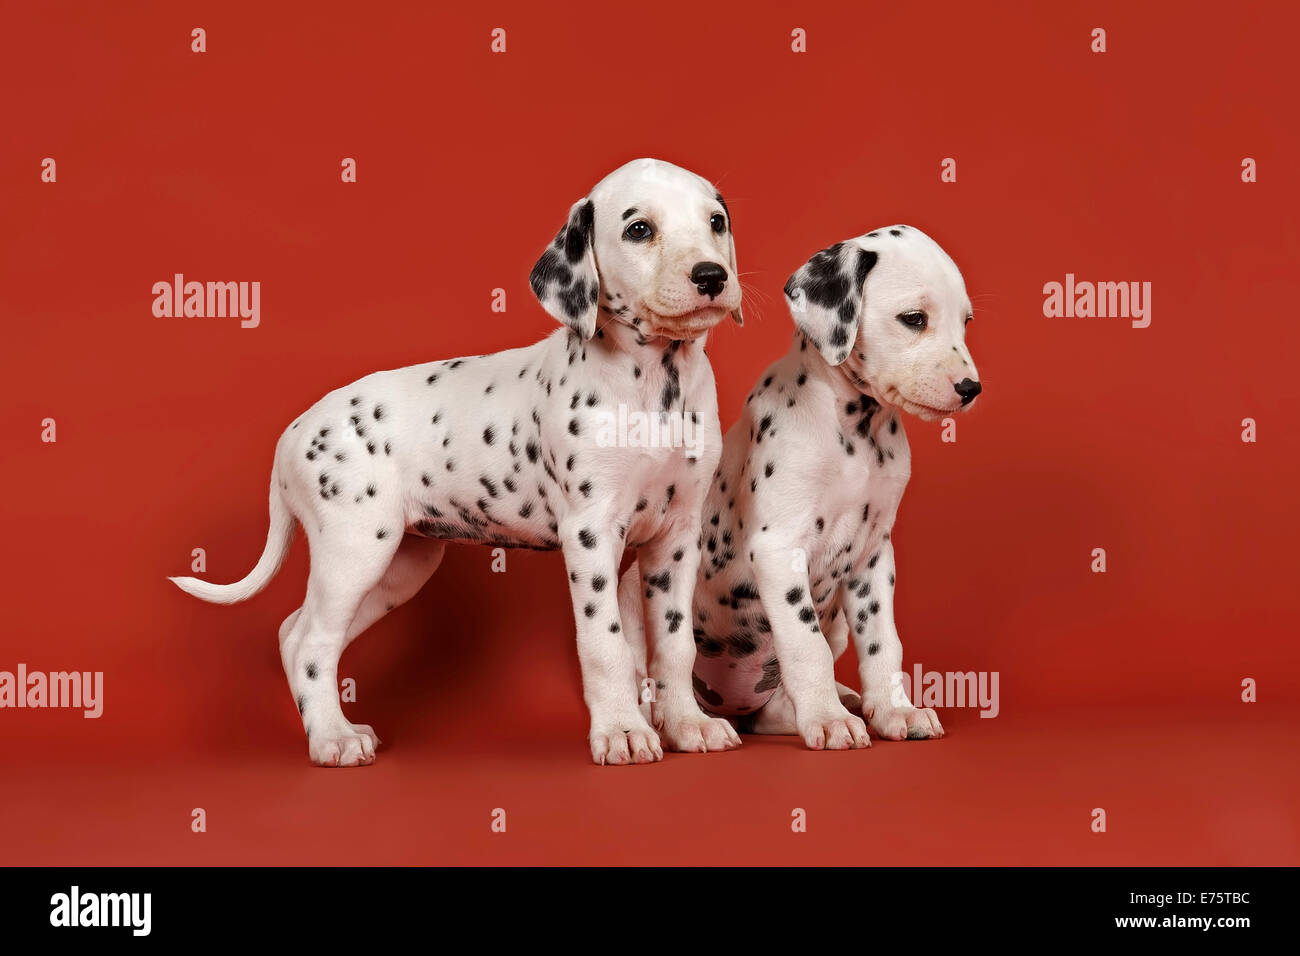 Two Dalmatian puppies, 6 weeks - Stock Image